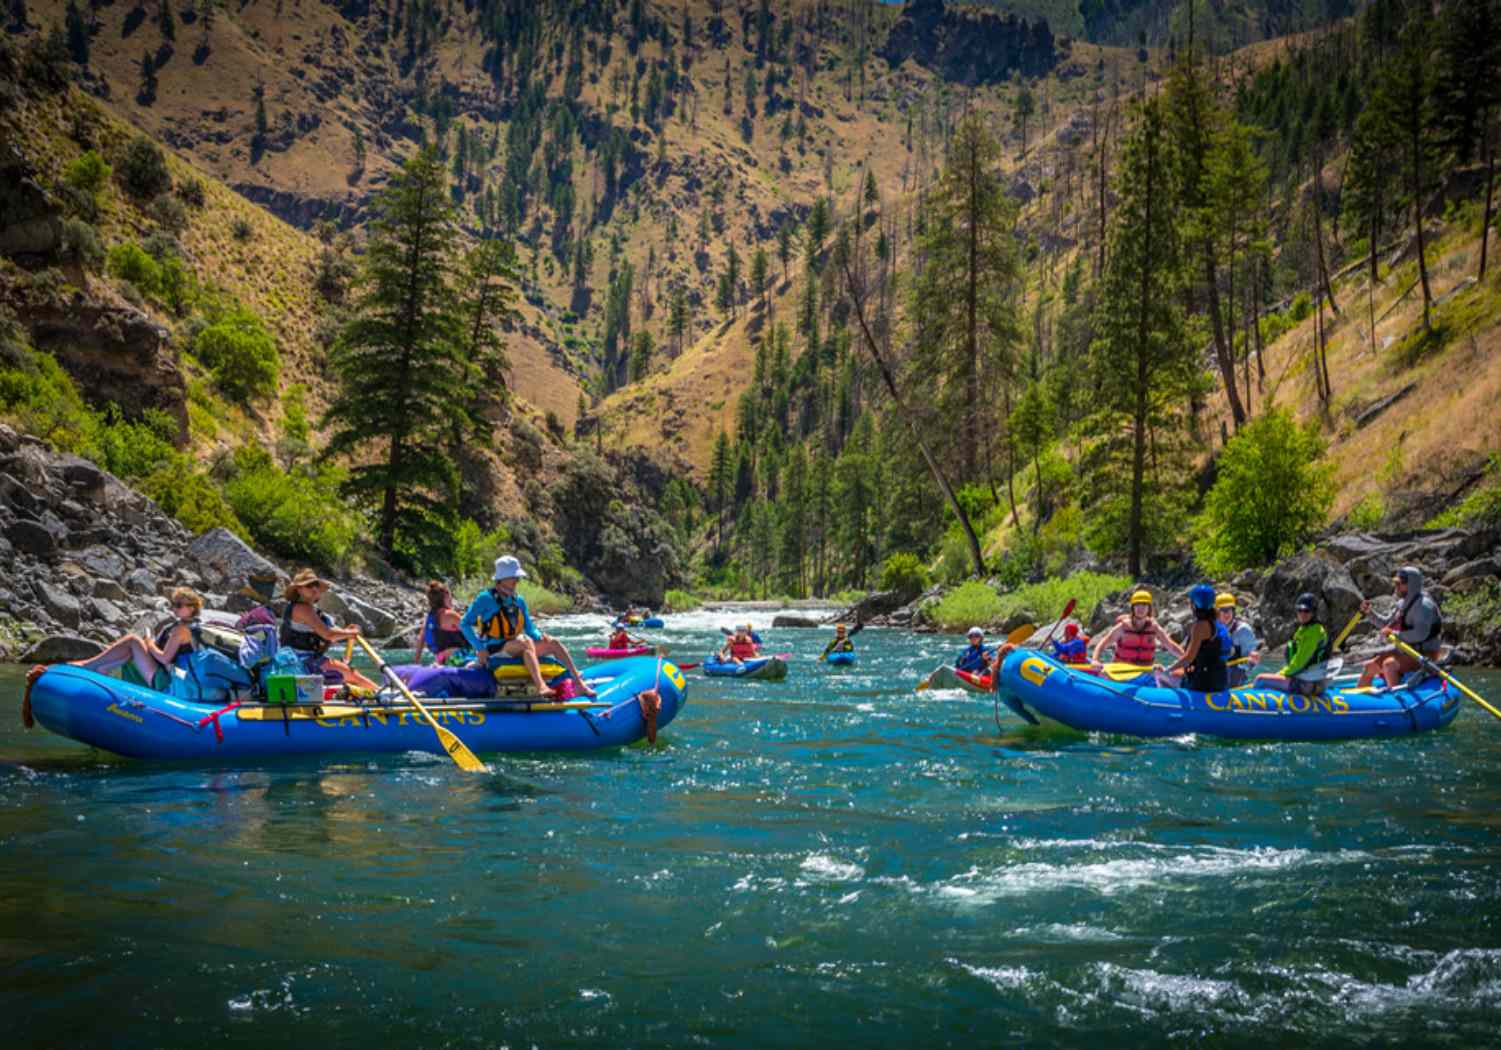 Family Rafting on the Salmon River